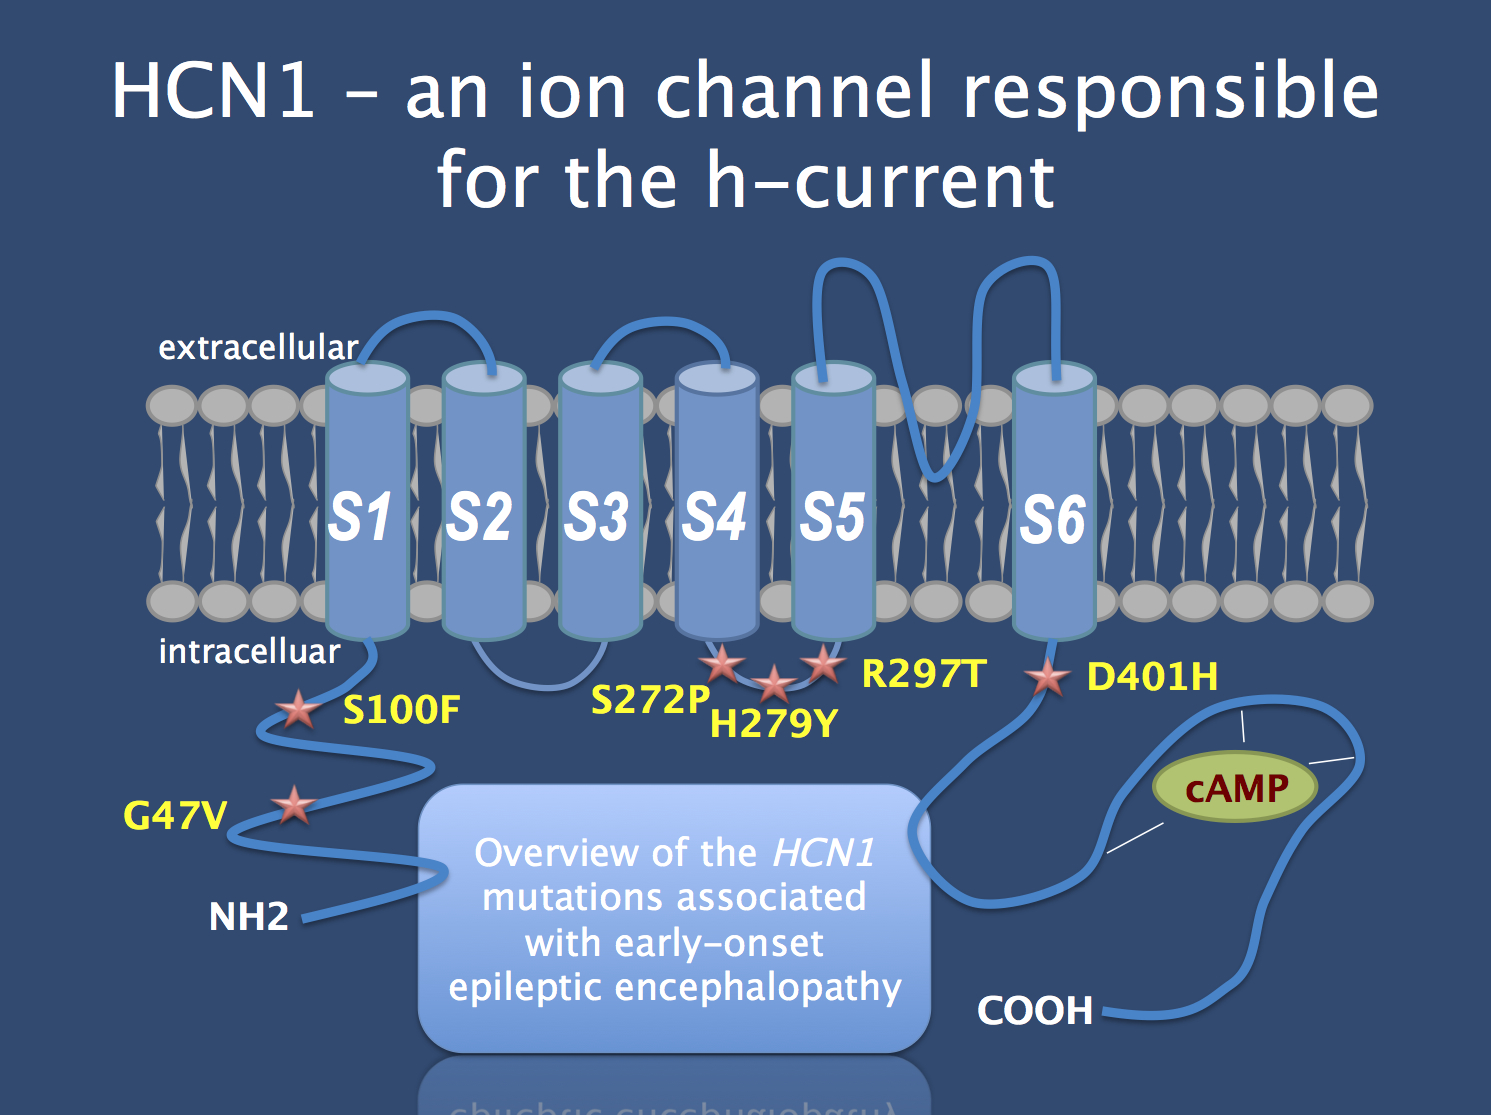 Schematic of the HCN1 channel with the protein alterations caused by the mutations identified in patients with Dravet-like epilepsy. In 5/6 patients, the variants were confirmed to be de novo. When studied functionally, some mutations lead to a gain-of-function while other mutations results in decreased channel function. The phenotype of patients with HCN1 mutations resembles Dravet Syndrome with an unusual progression into atypical absences and autistic features (non-copyrighted preliminary version of figure provided by author)